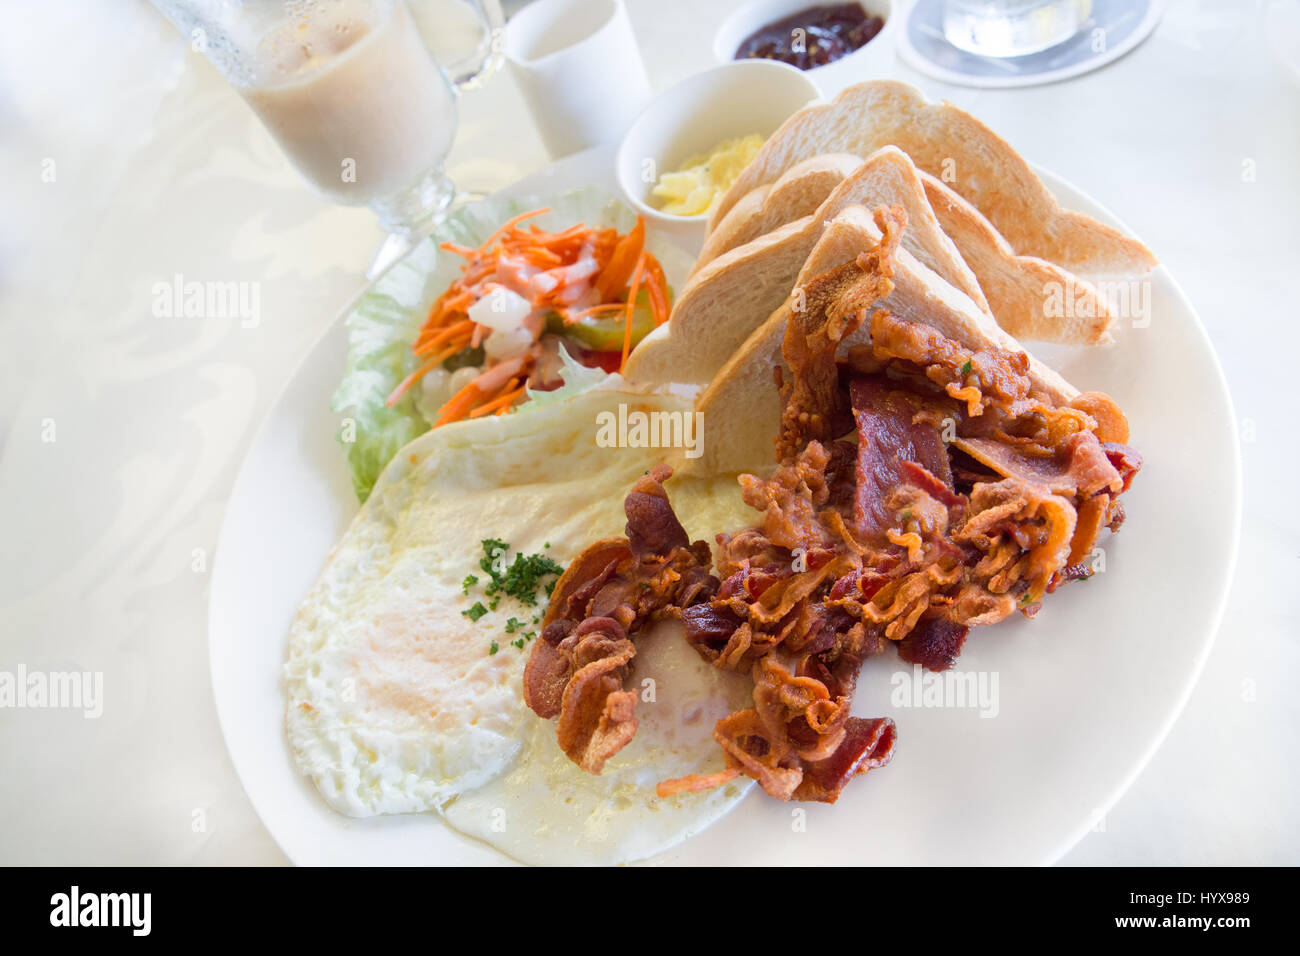 Bacon and fried egg breakfast in setting - Stock Image